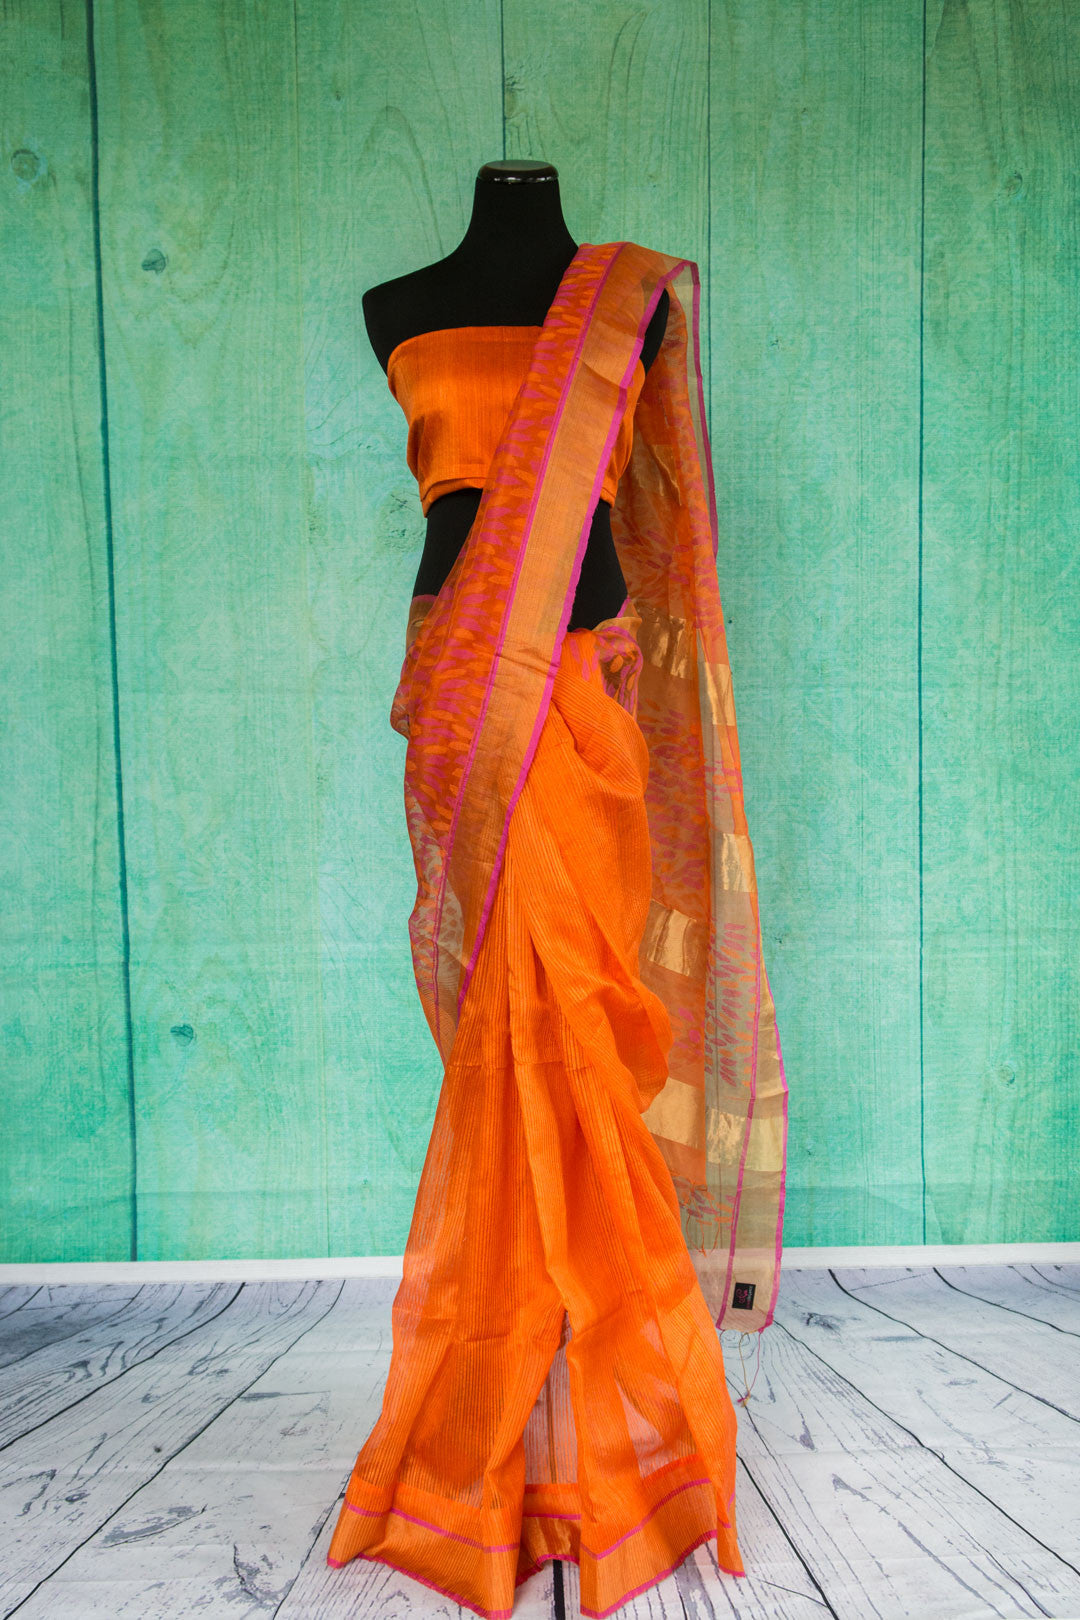 90c009 Orange matka silk saree with a golden border with pink trim. Buy this traditional saree, ideal for festive occasions at Pure Elegance, our Indian clothing store online in USA.